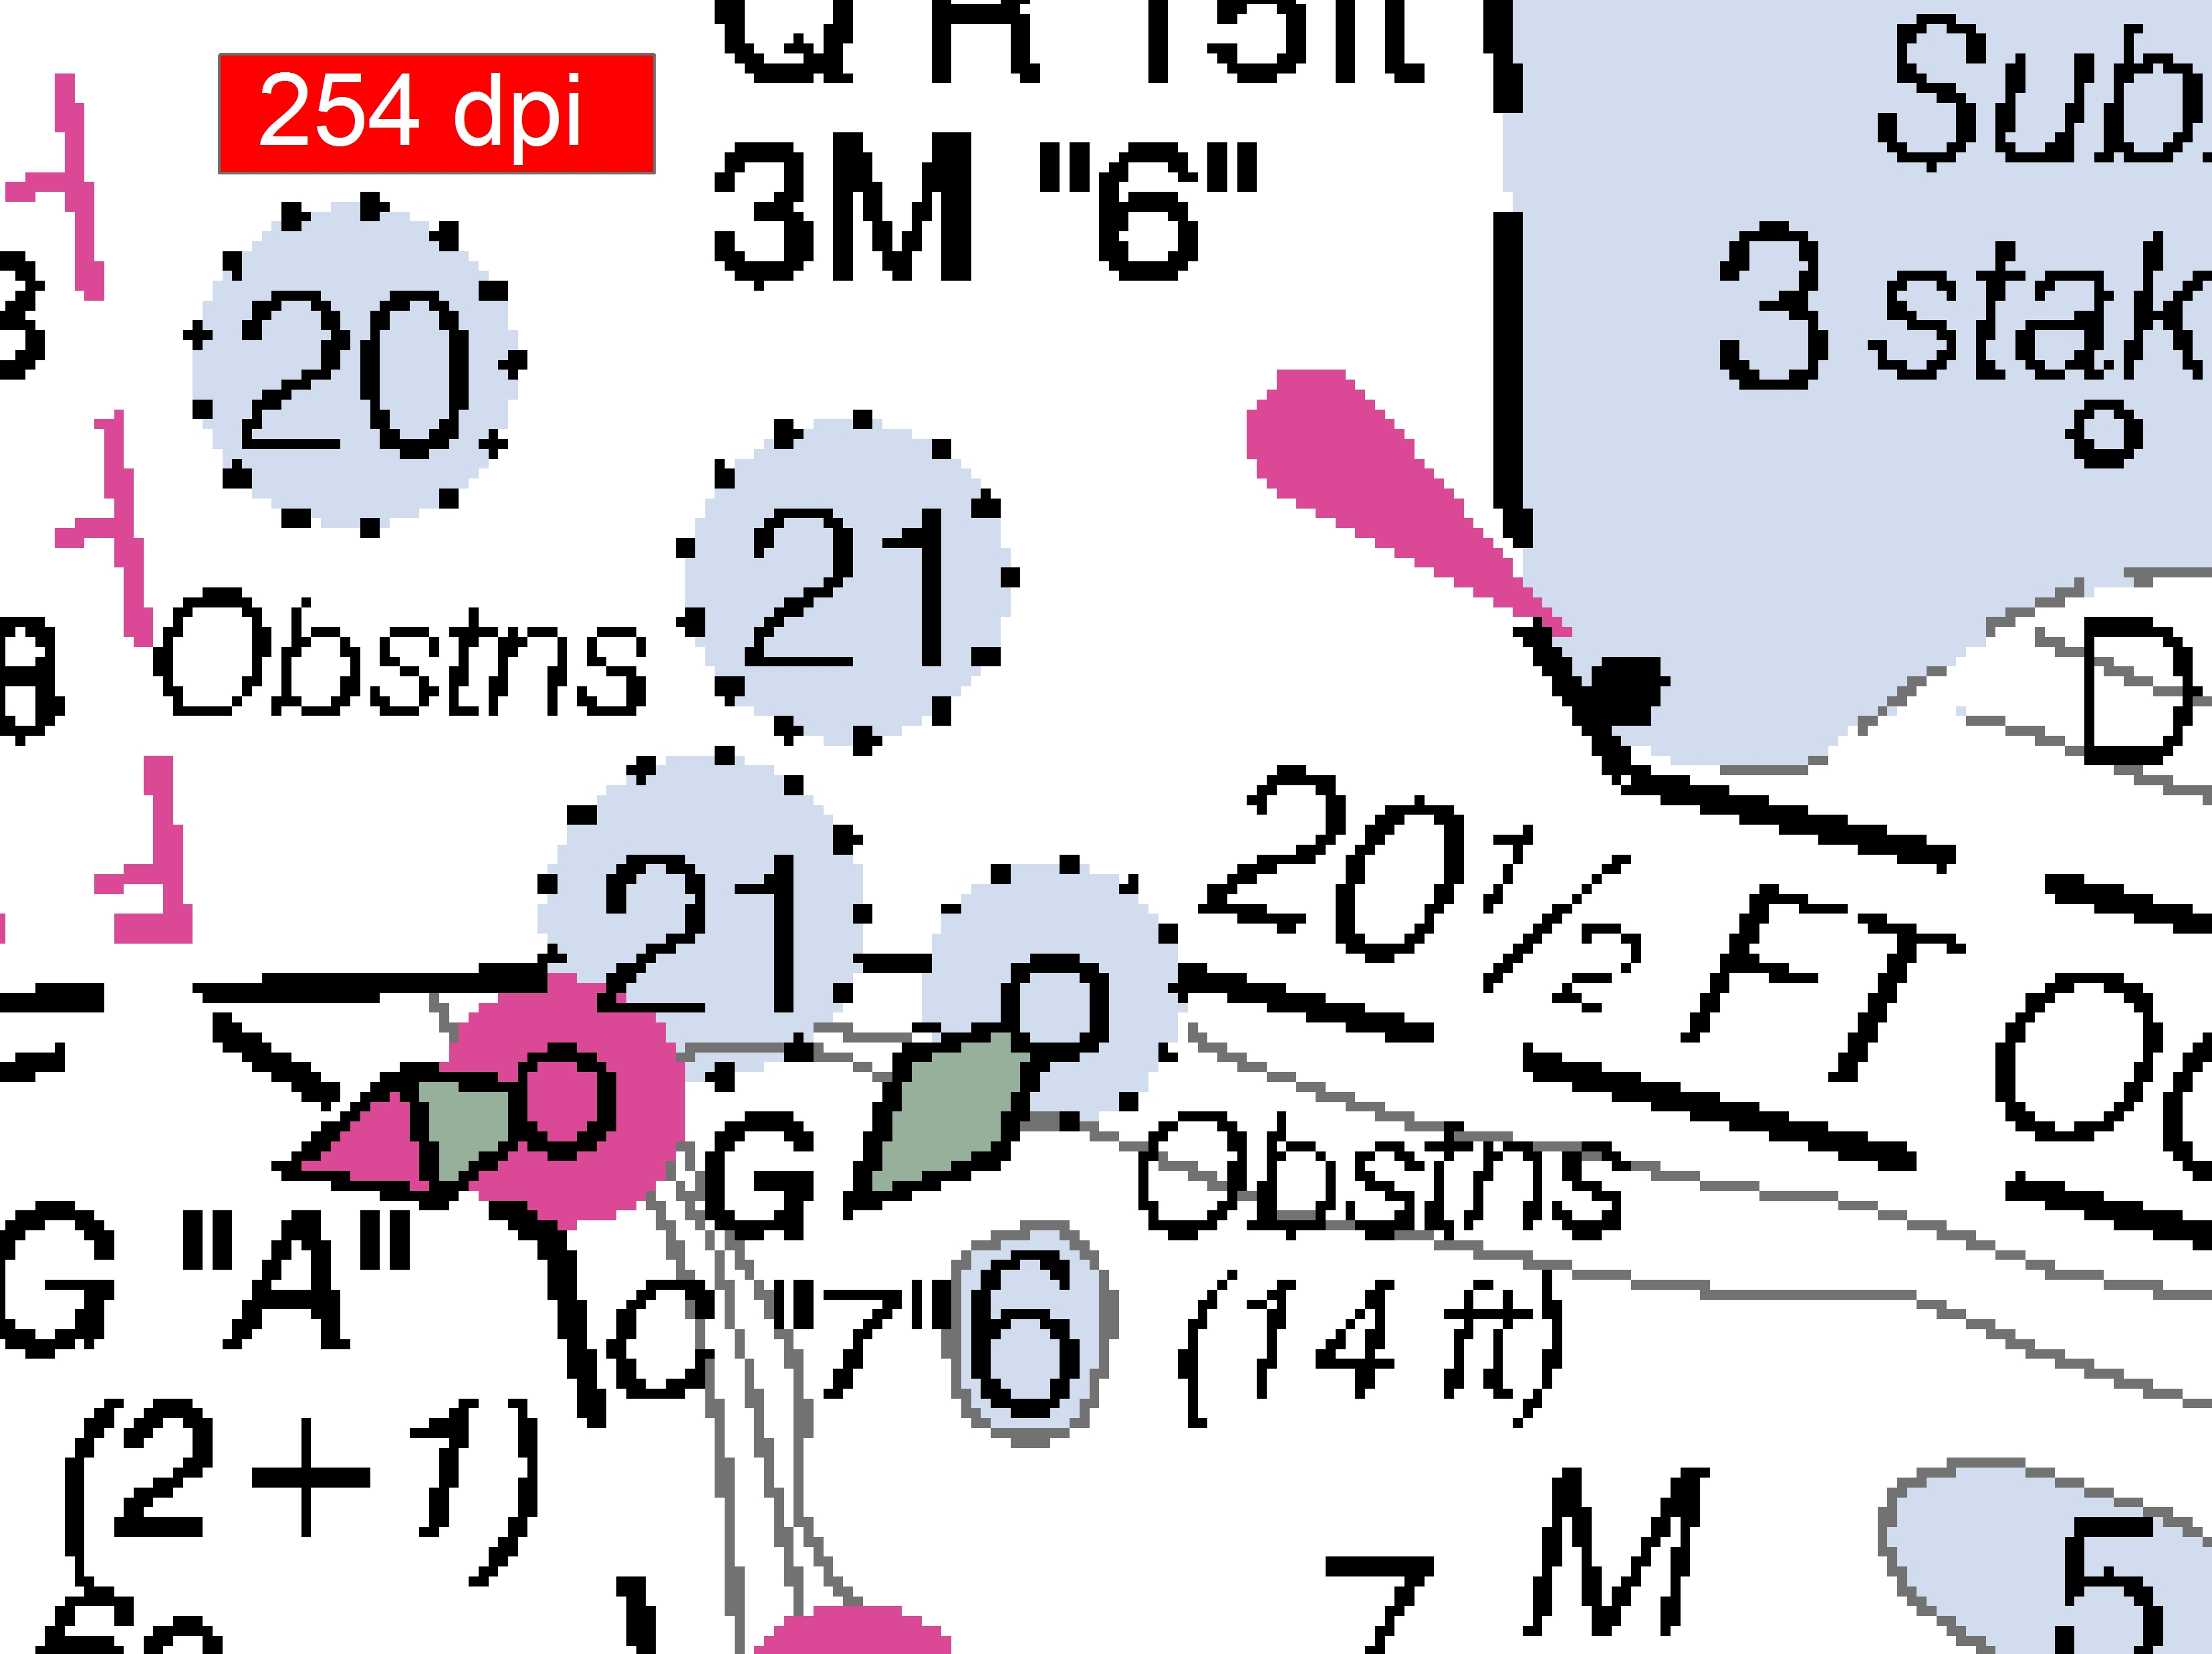 Better nautical chart images coming to electronic charting systems rnc screengrab at 254 dpi buycottarizona Image collections